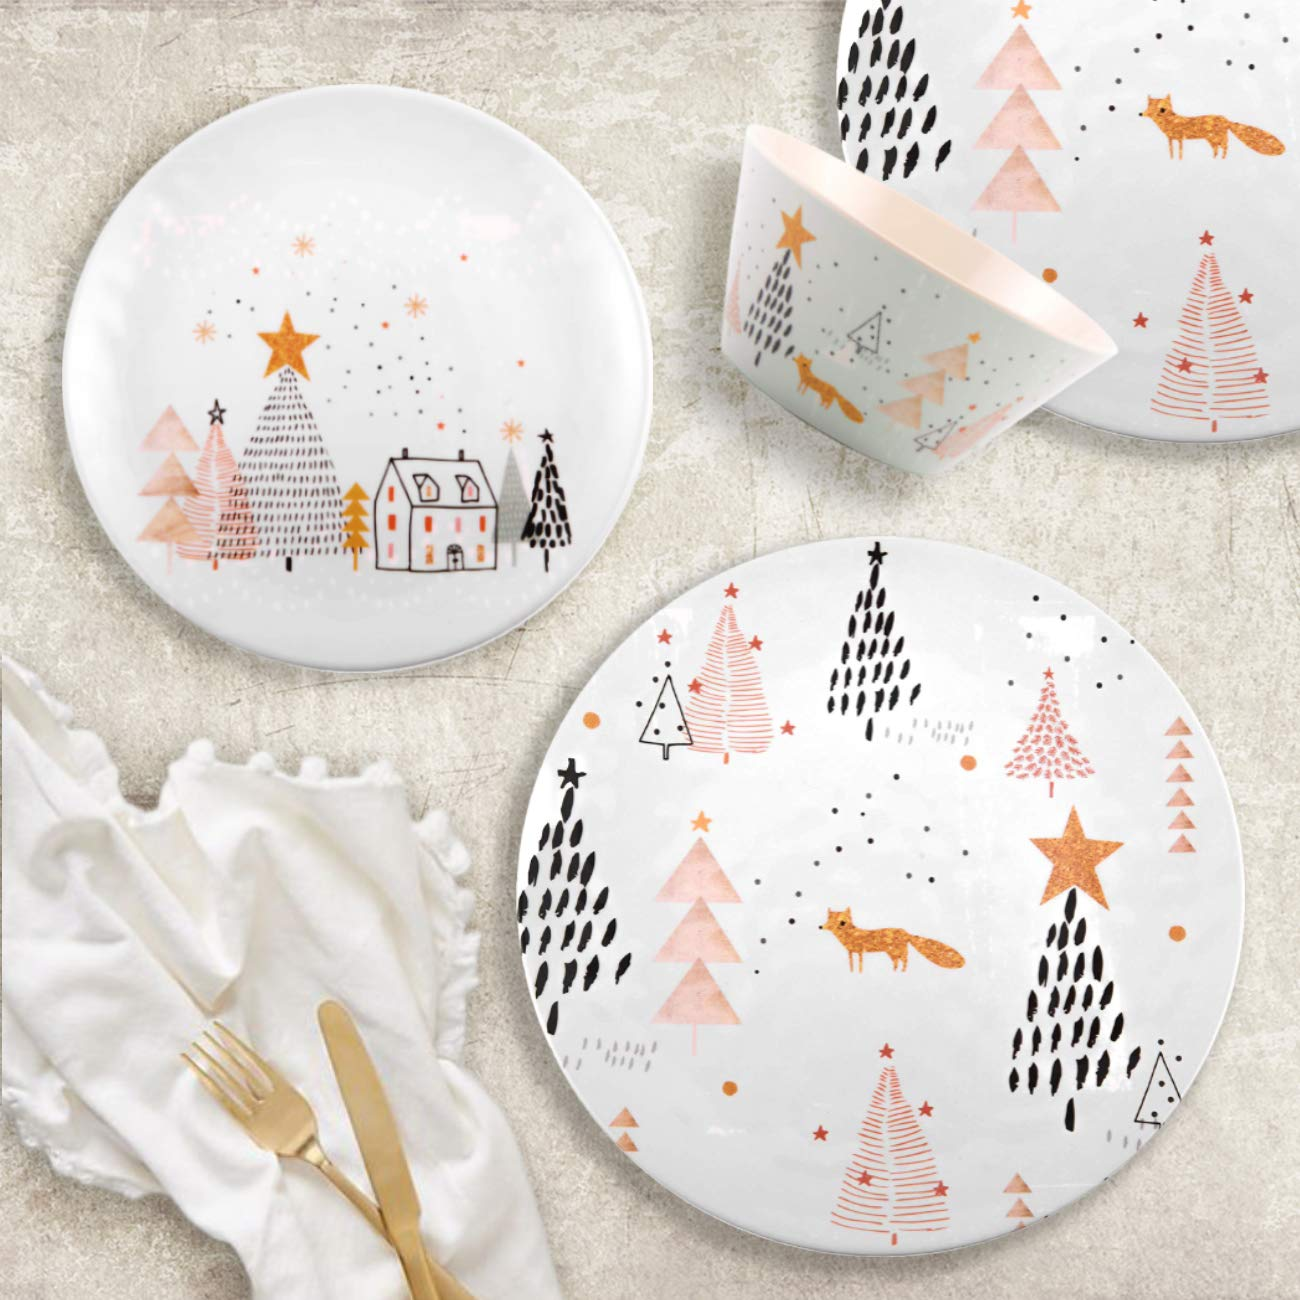 4 Each Melange 608410091580 12-Piece 100/% Dinnerware Set for 4 Christmas Collection-Golden Fox Shatter-Proof and Chip-Resistant Melamine Dinner Plate 10.5 White 10.5 White Salad Plate /& Soup Bowl